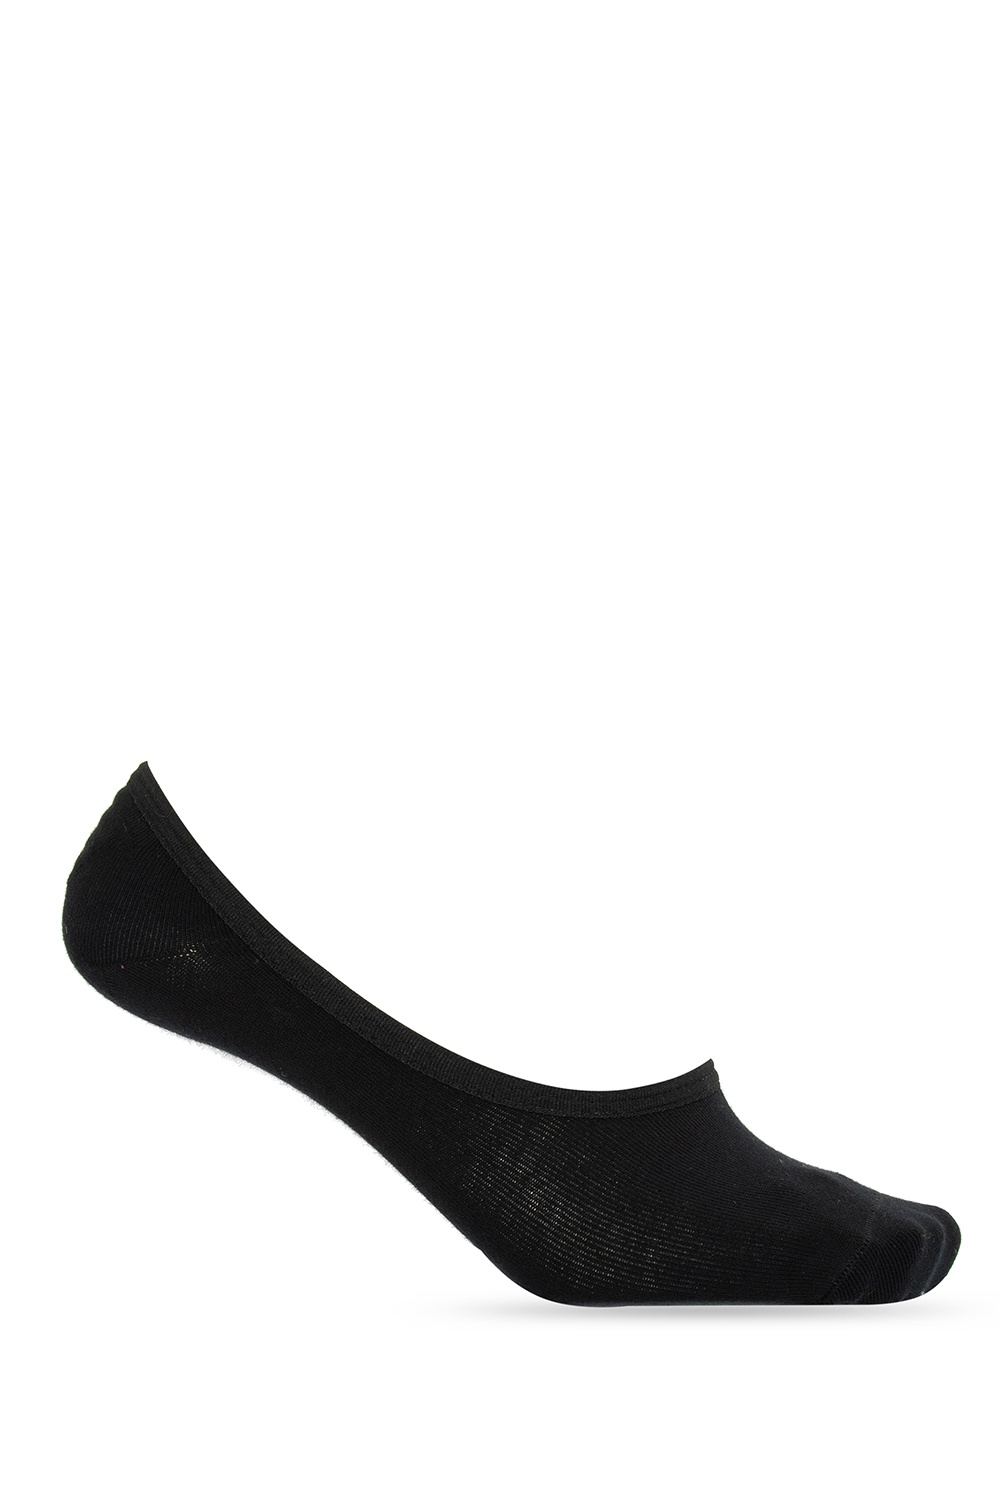 Diesel Low-cut socks two-pack